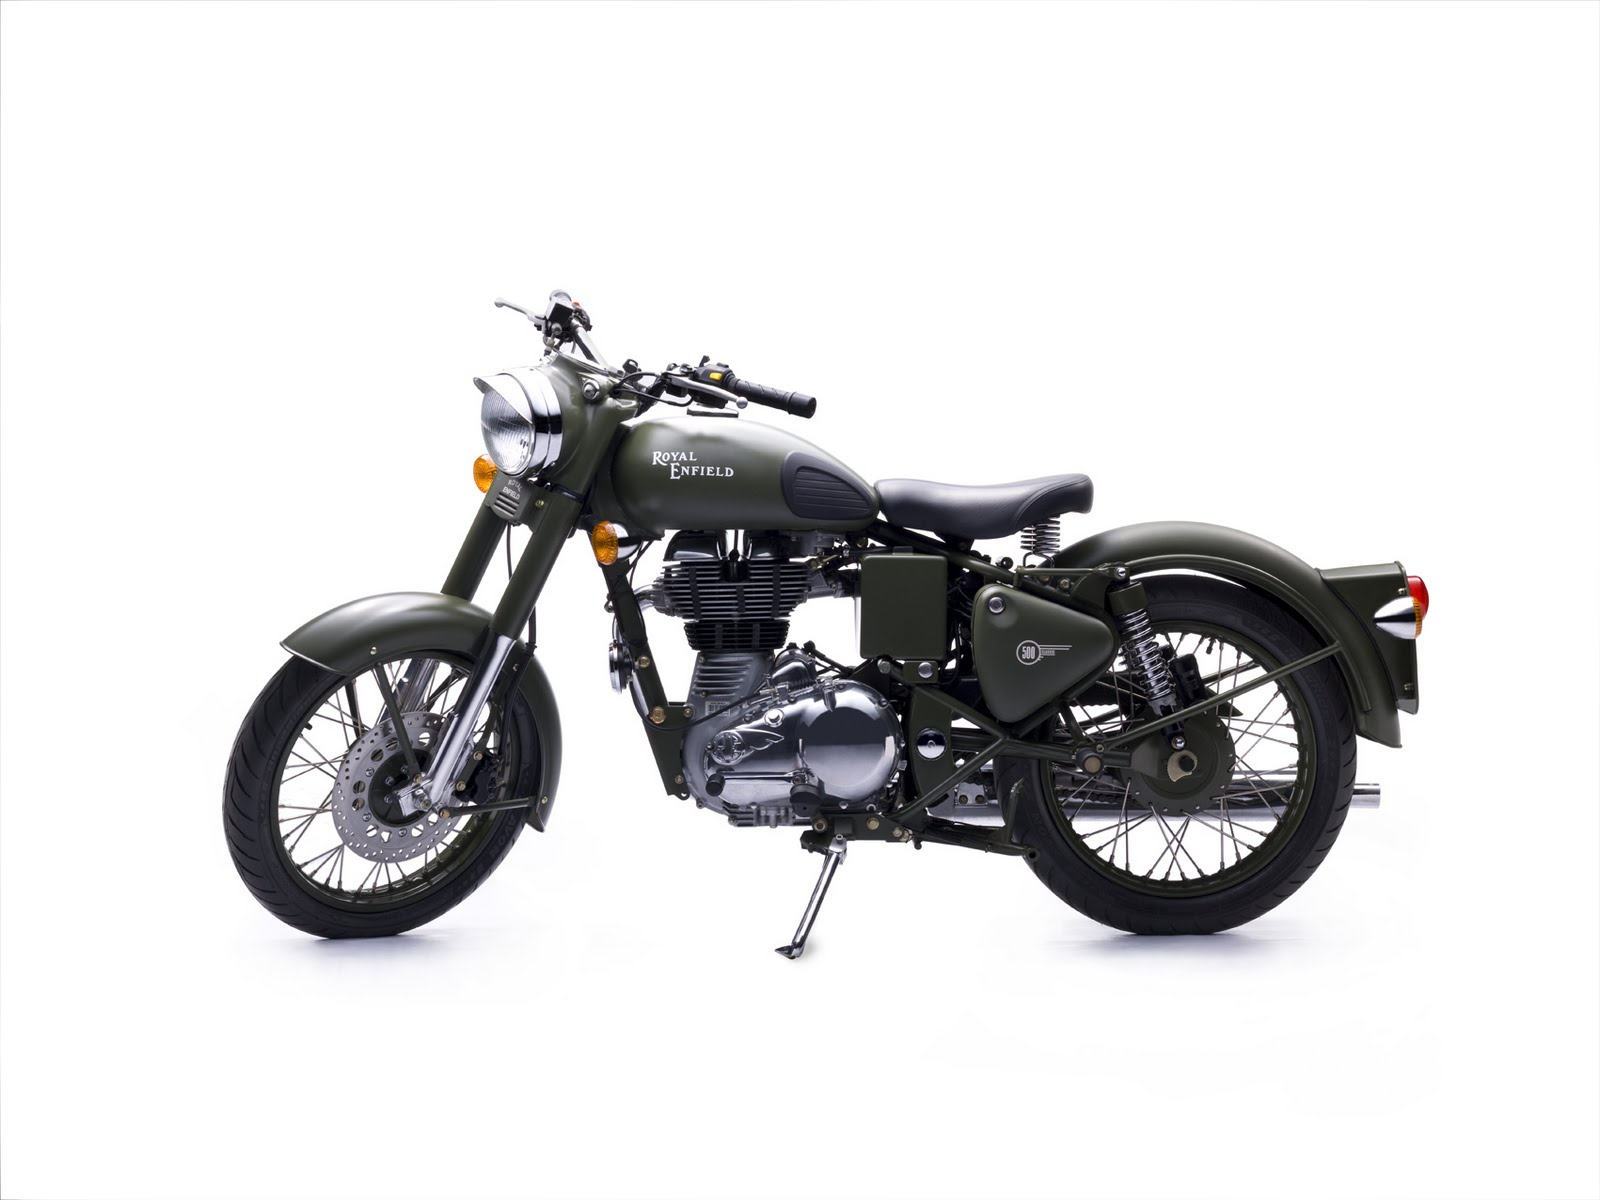 For 2010 The Royal Enfield Bullet Clic Will Be Available In A Battle Green Uniform Tribute To Manufacturer S Long Ociation With Indian Army